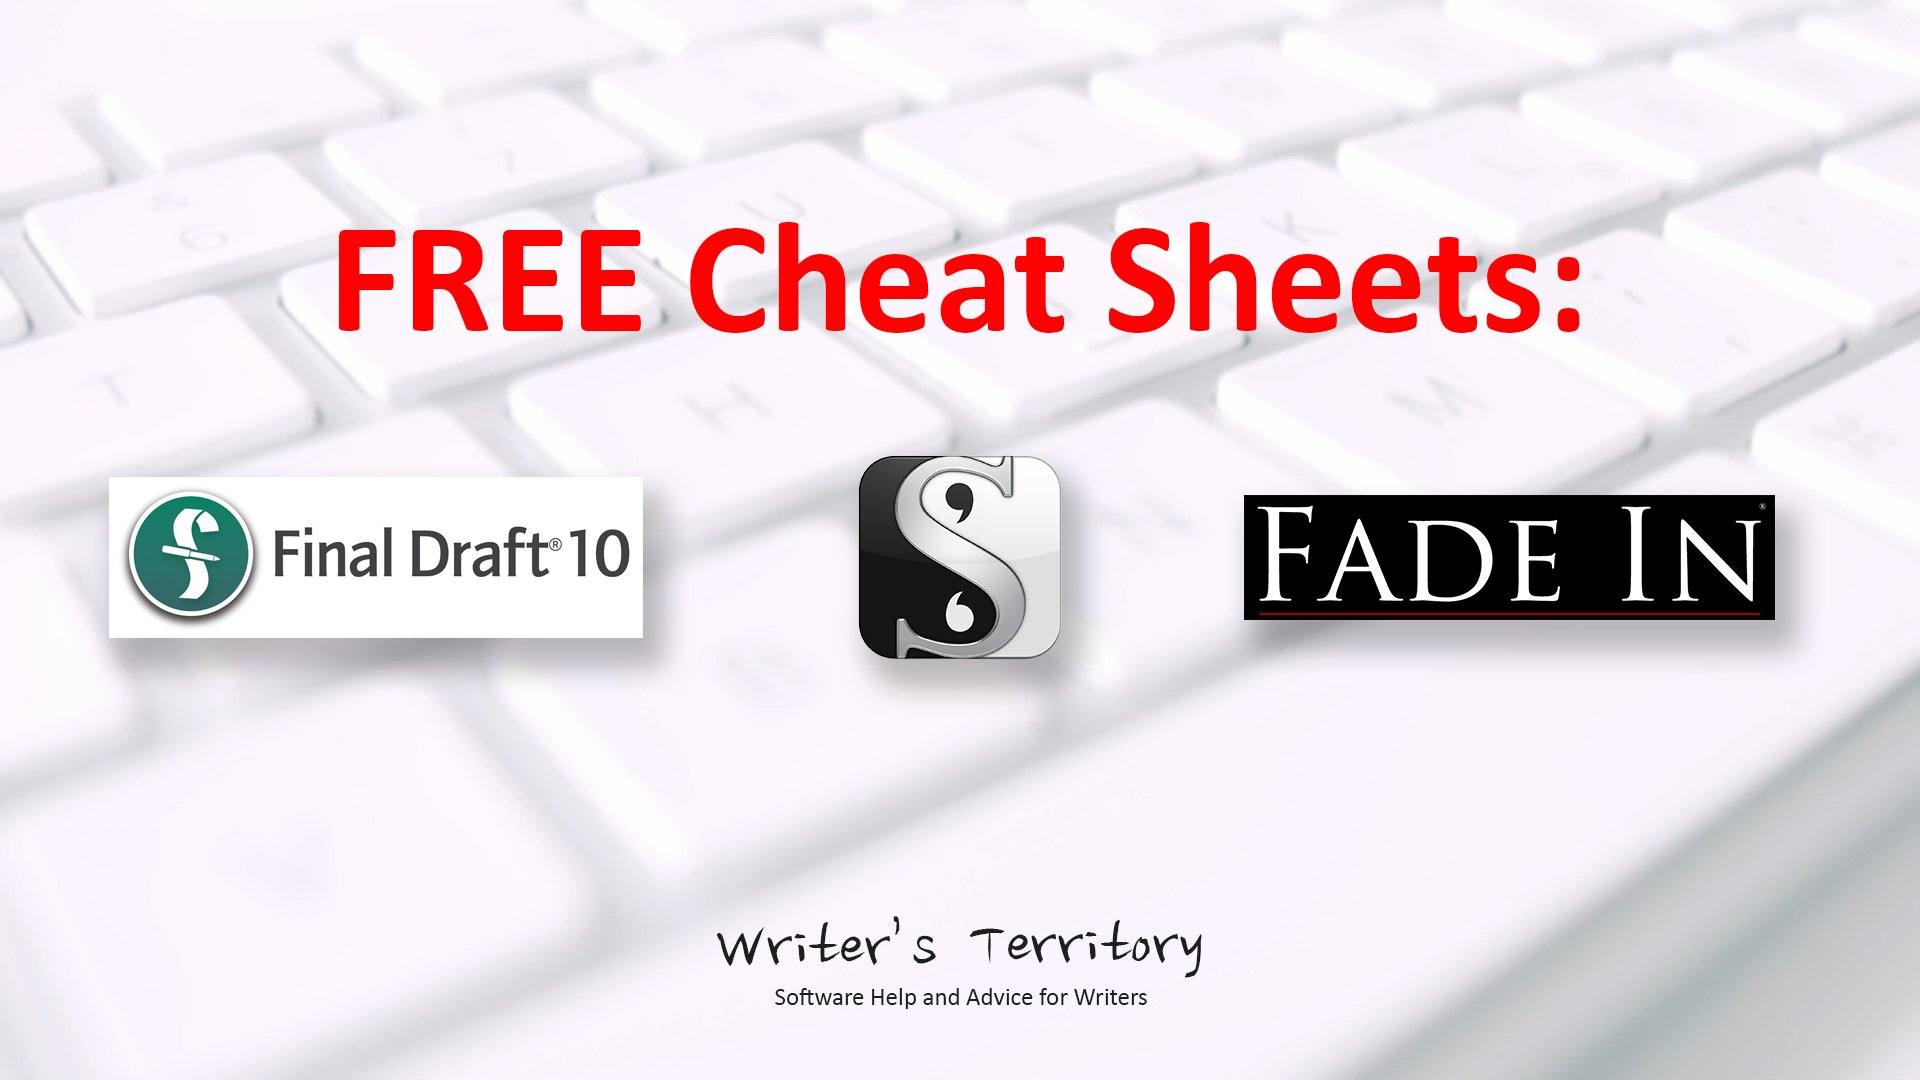 Download Cheat Sheets for Scrivener, Fade In, Final Draft